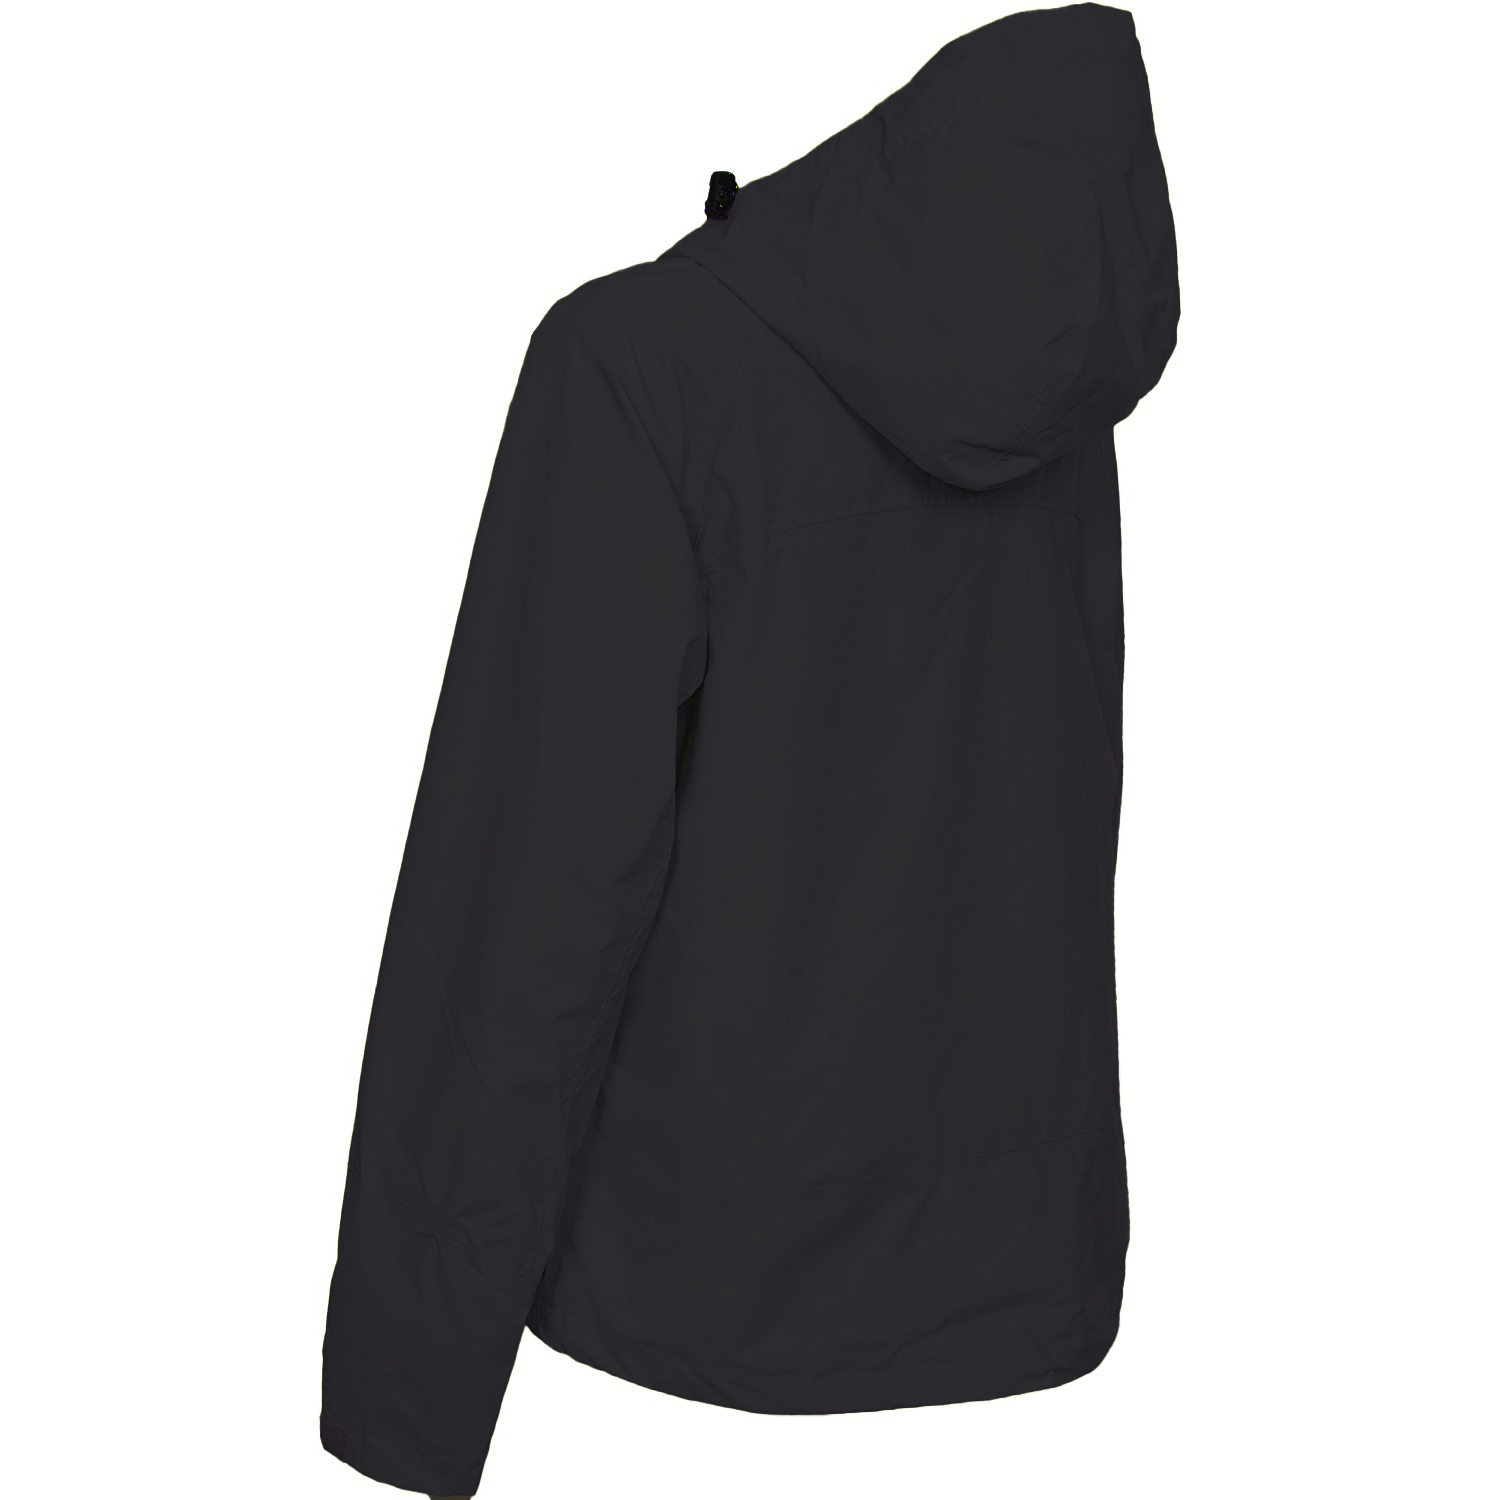 From women's active clothing to paddling gear, discover chaplin-favor.tk's great selection of gear designed just for women – and made for the shared joy of the outdoors.